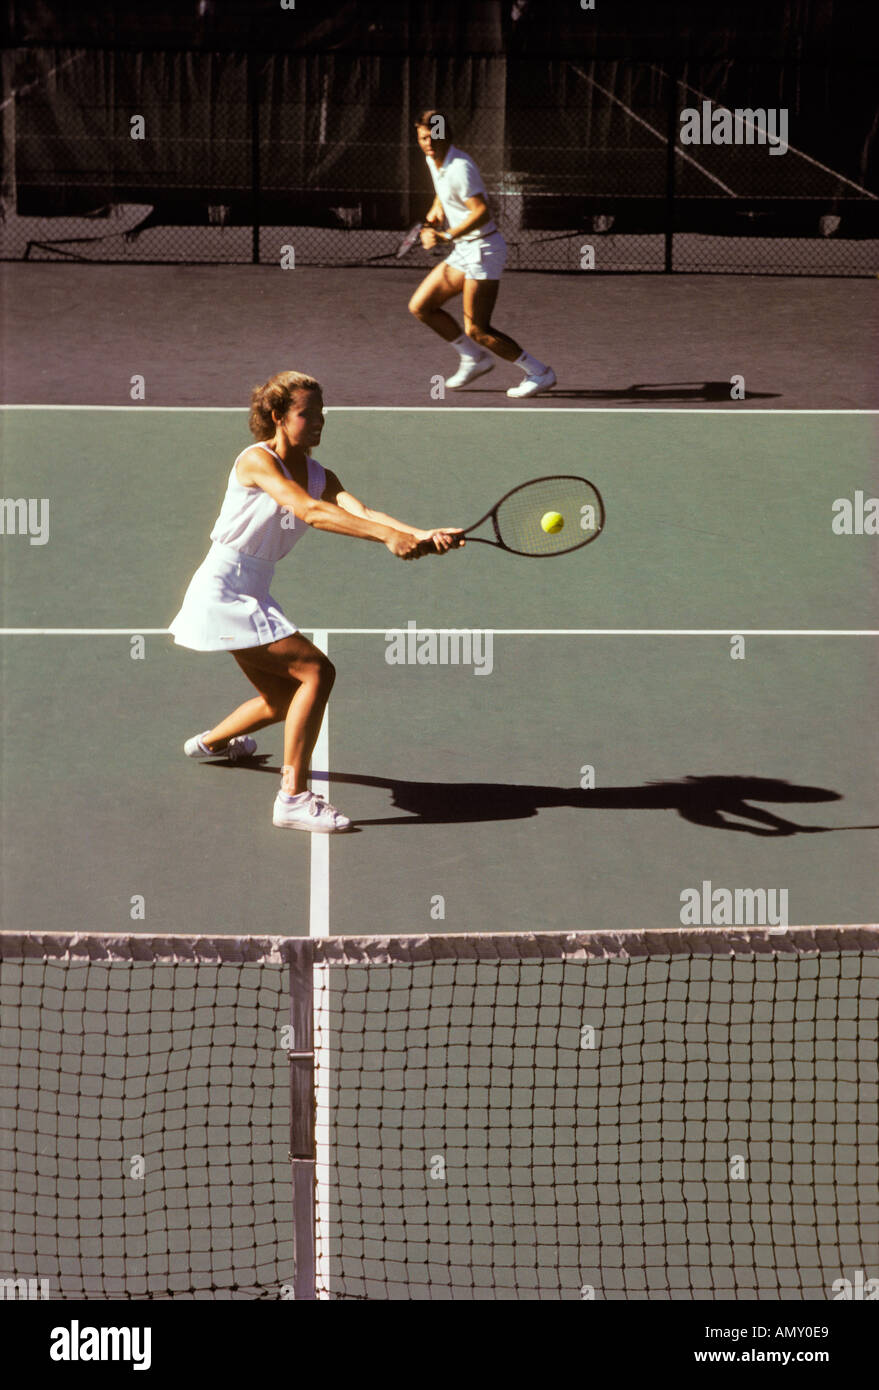 A woman player hits a two handed backhand during a mixed doubles match - Stock Image